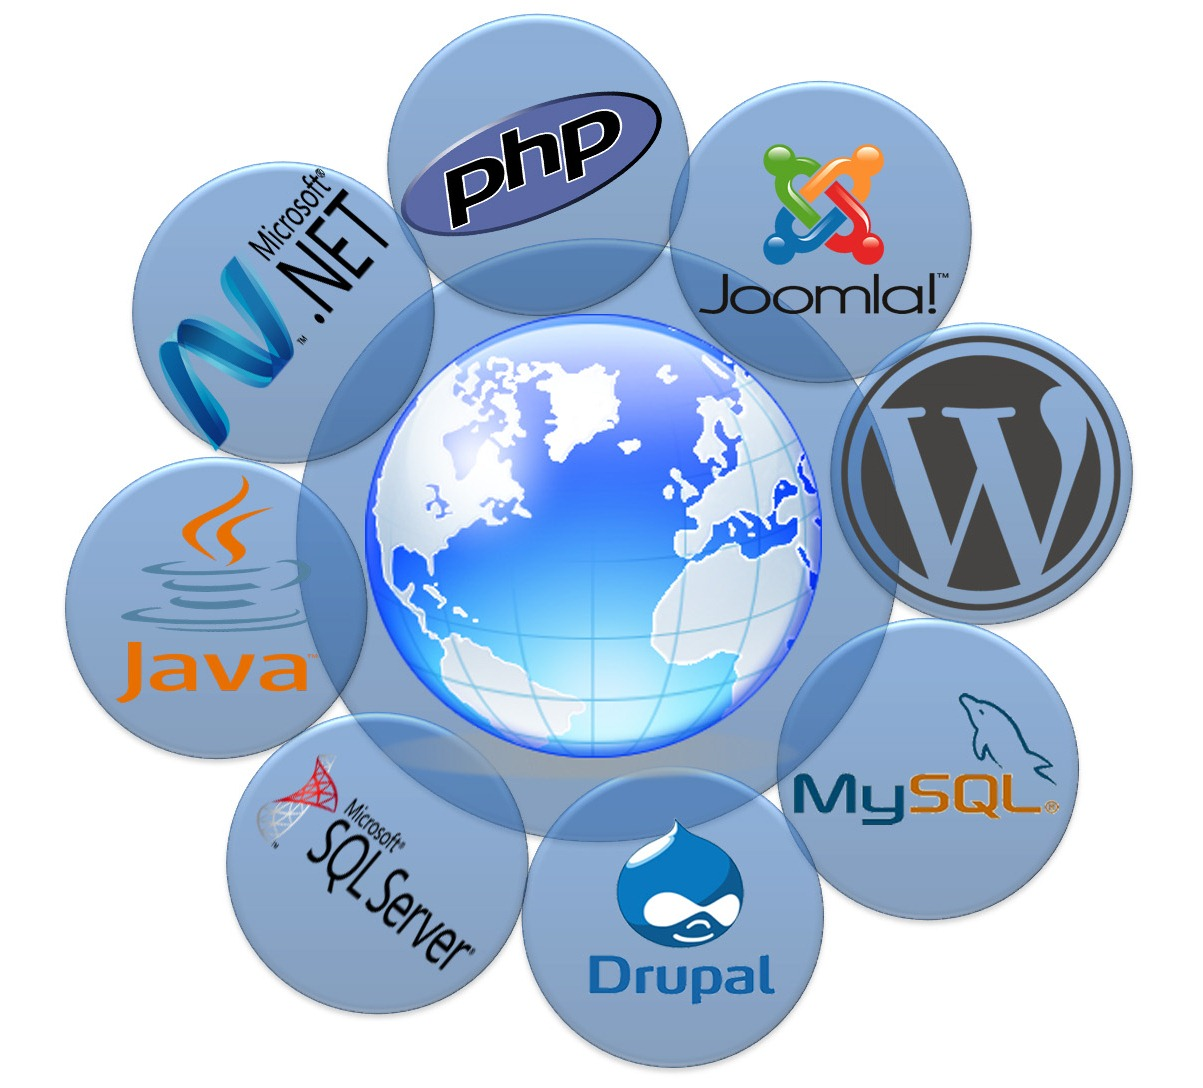 Tips to consider when hiring a Web Development Company